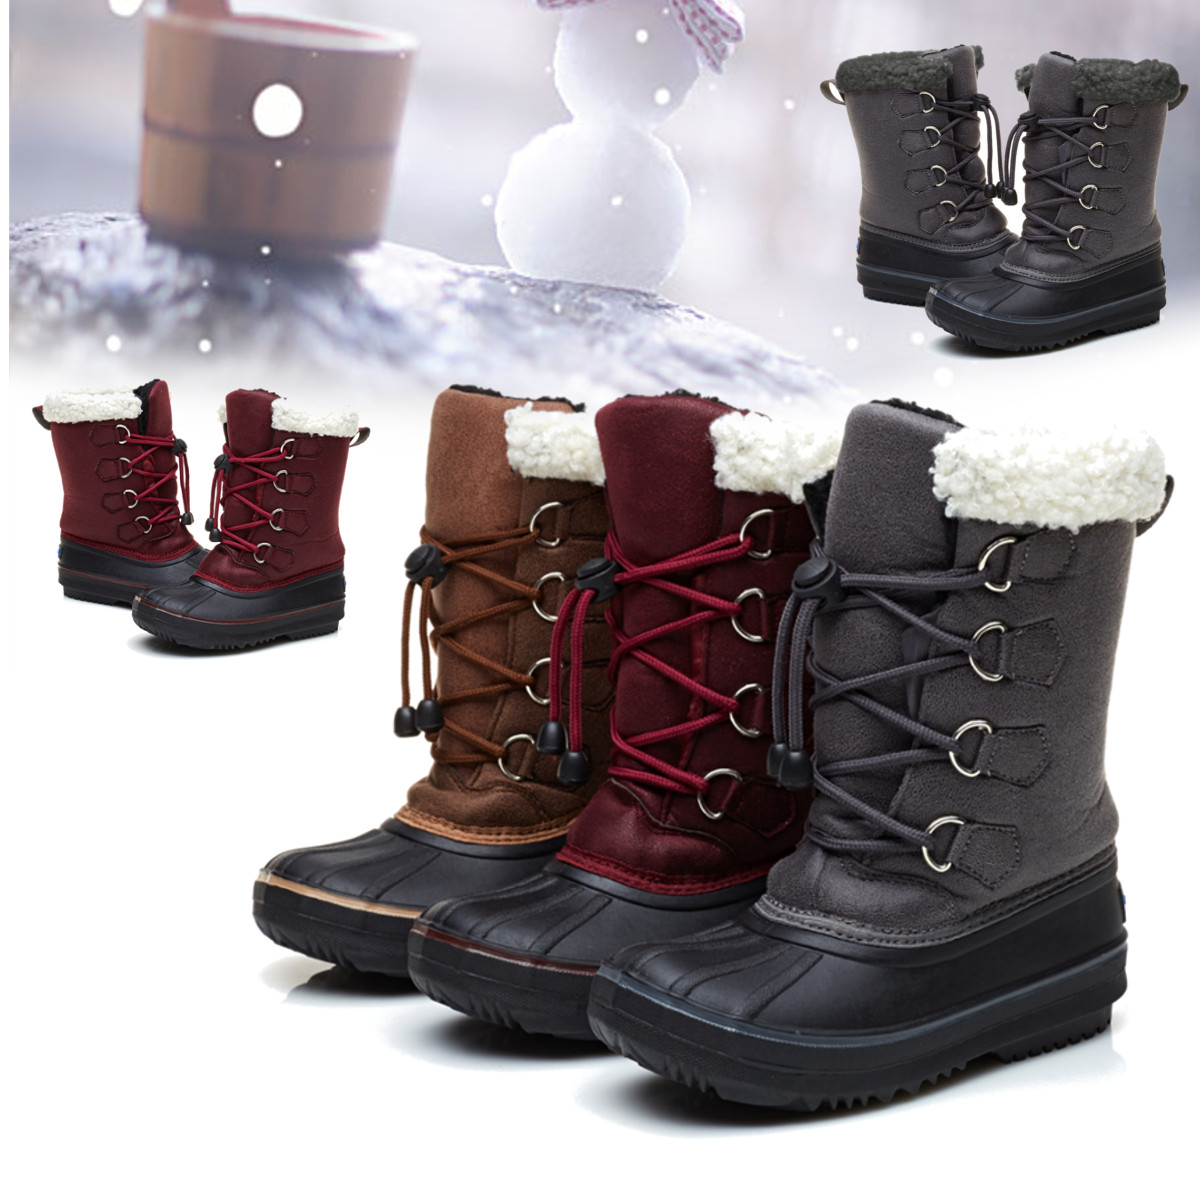 Kids Boys Snow Boots Wool Shoes Thicken Non-slip Leather Waterproof Warm Grils